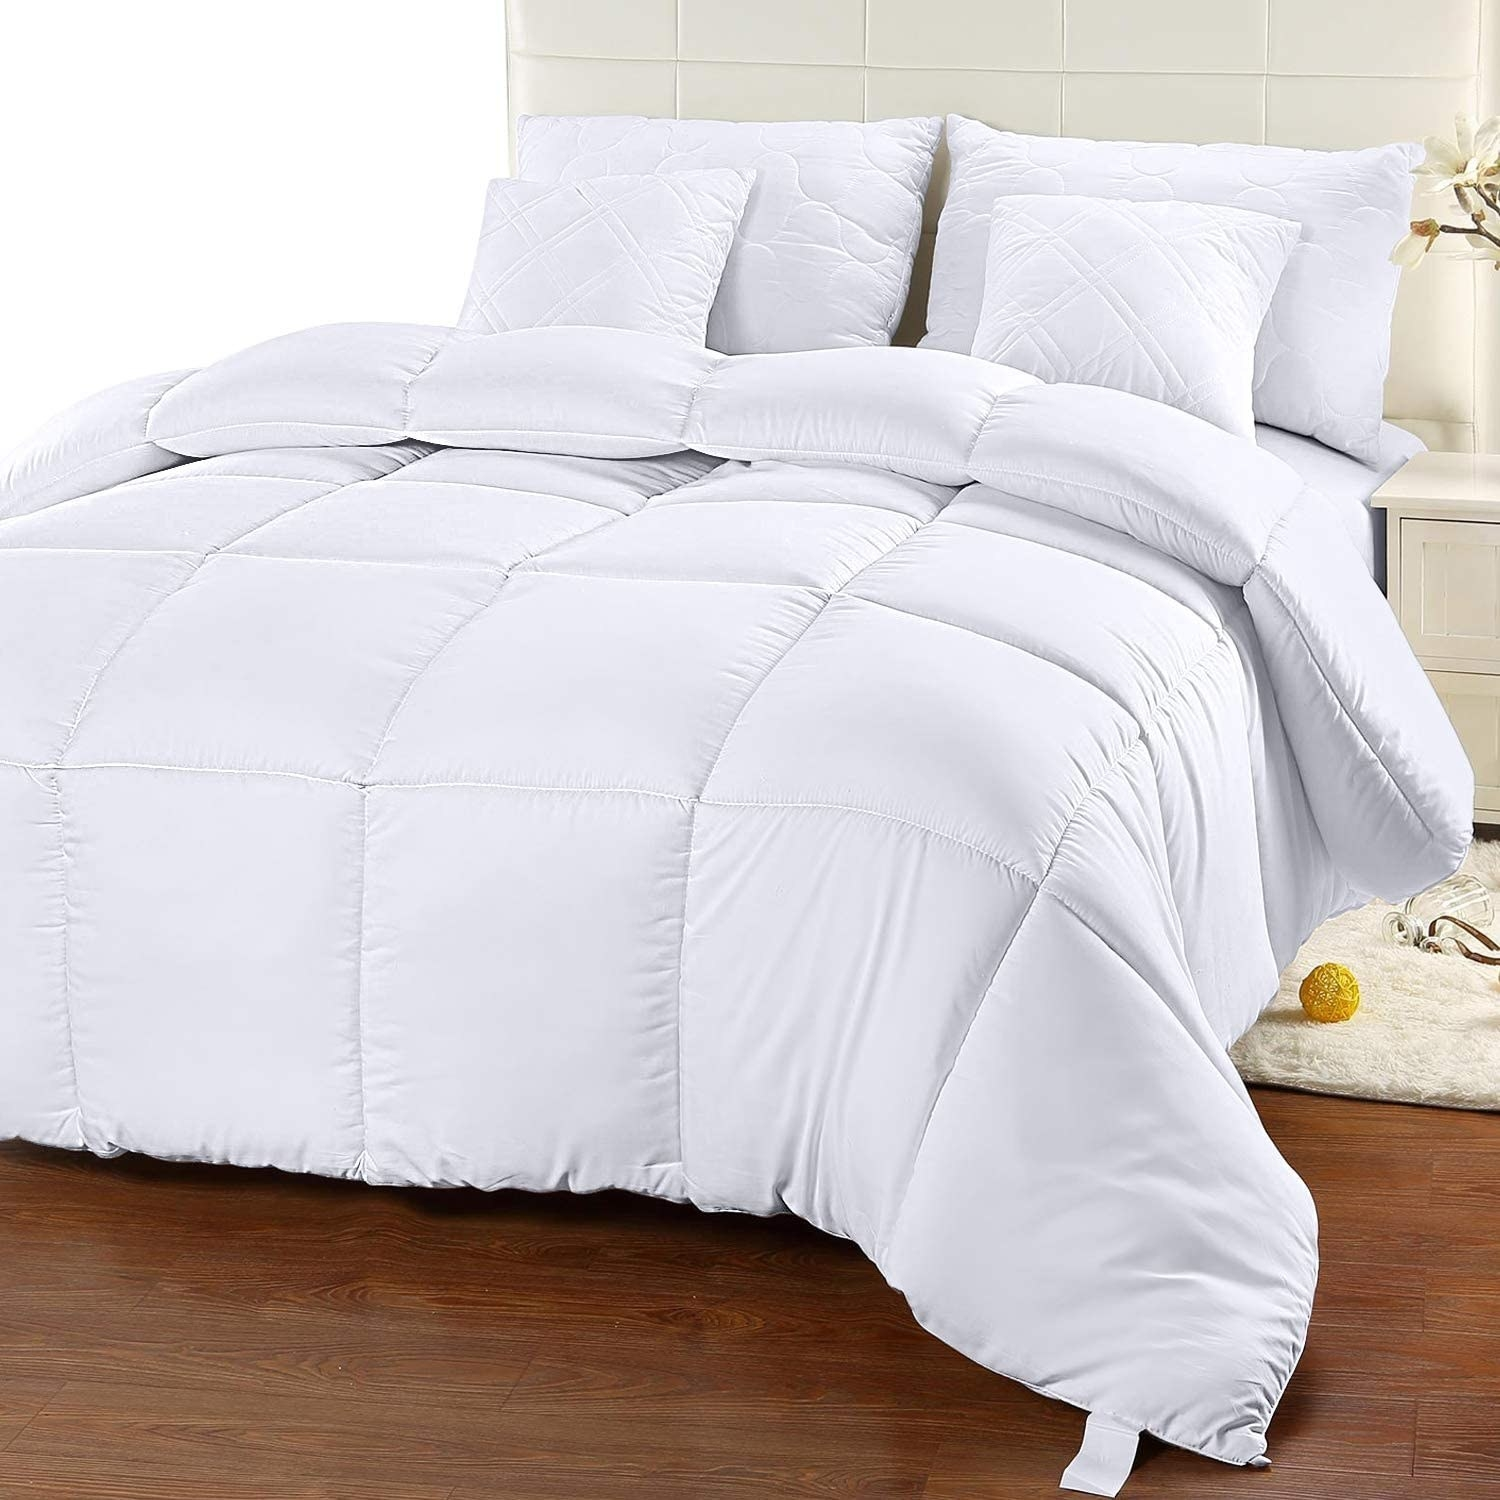 White quilted duvet comforter on a bed